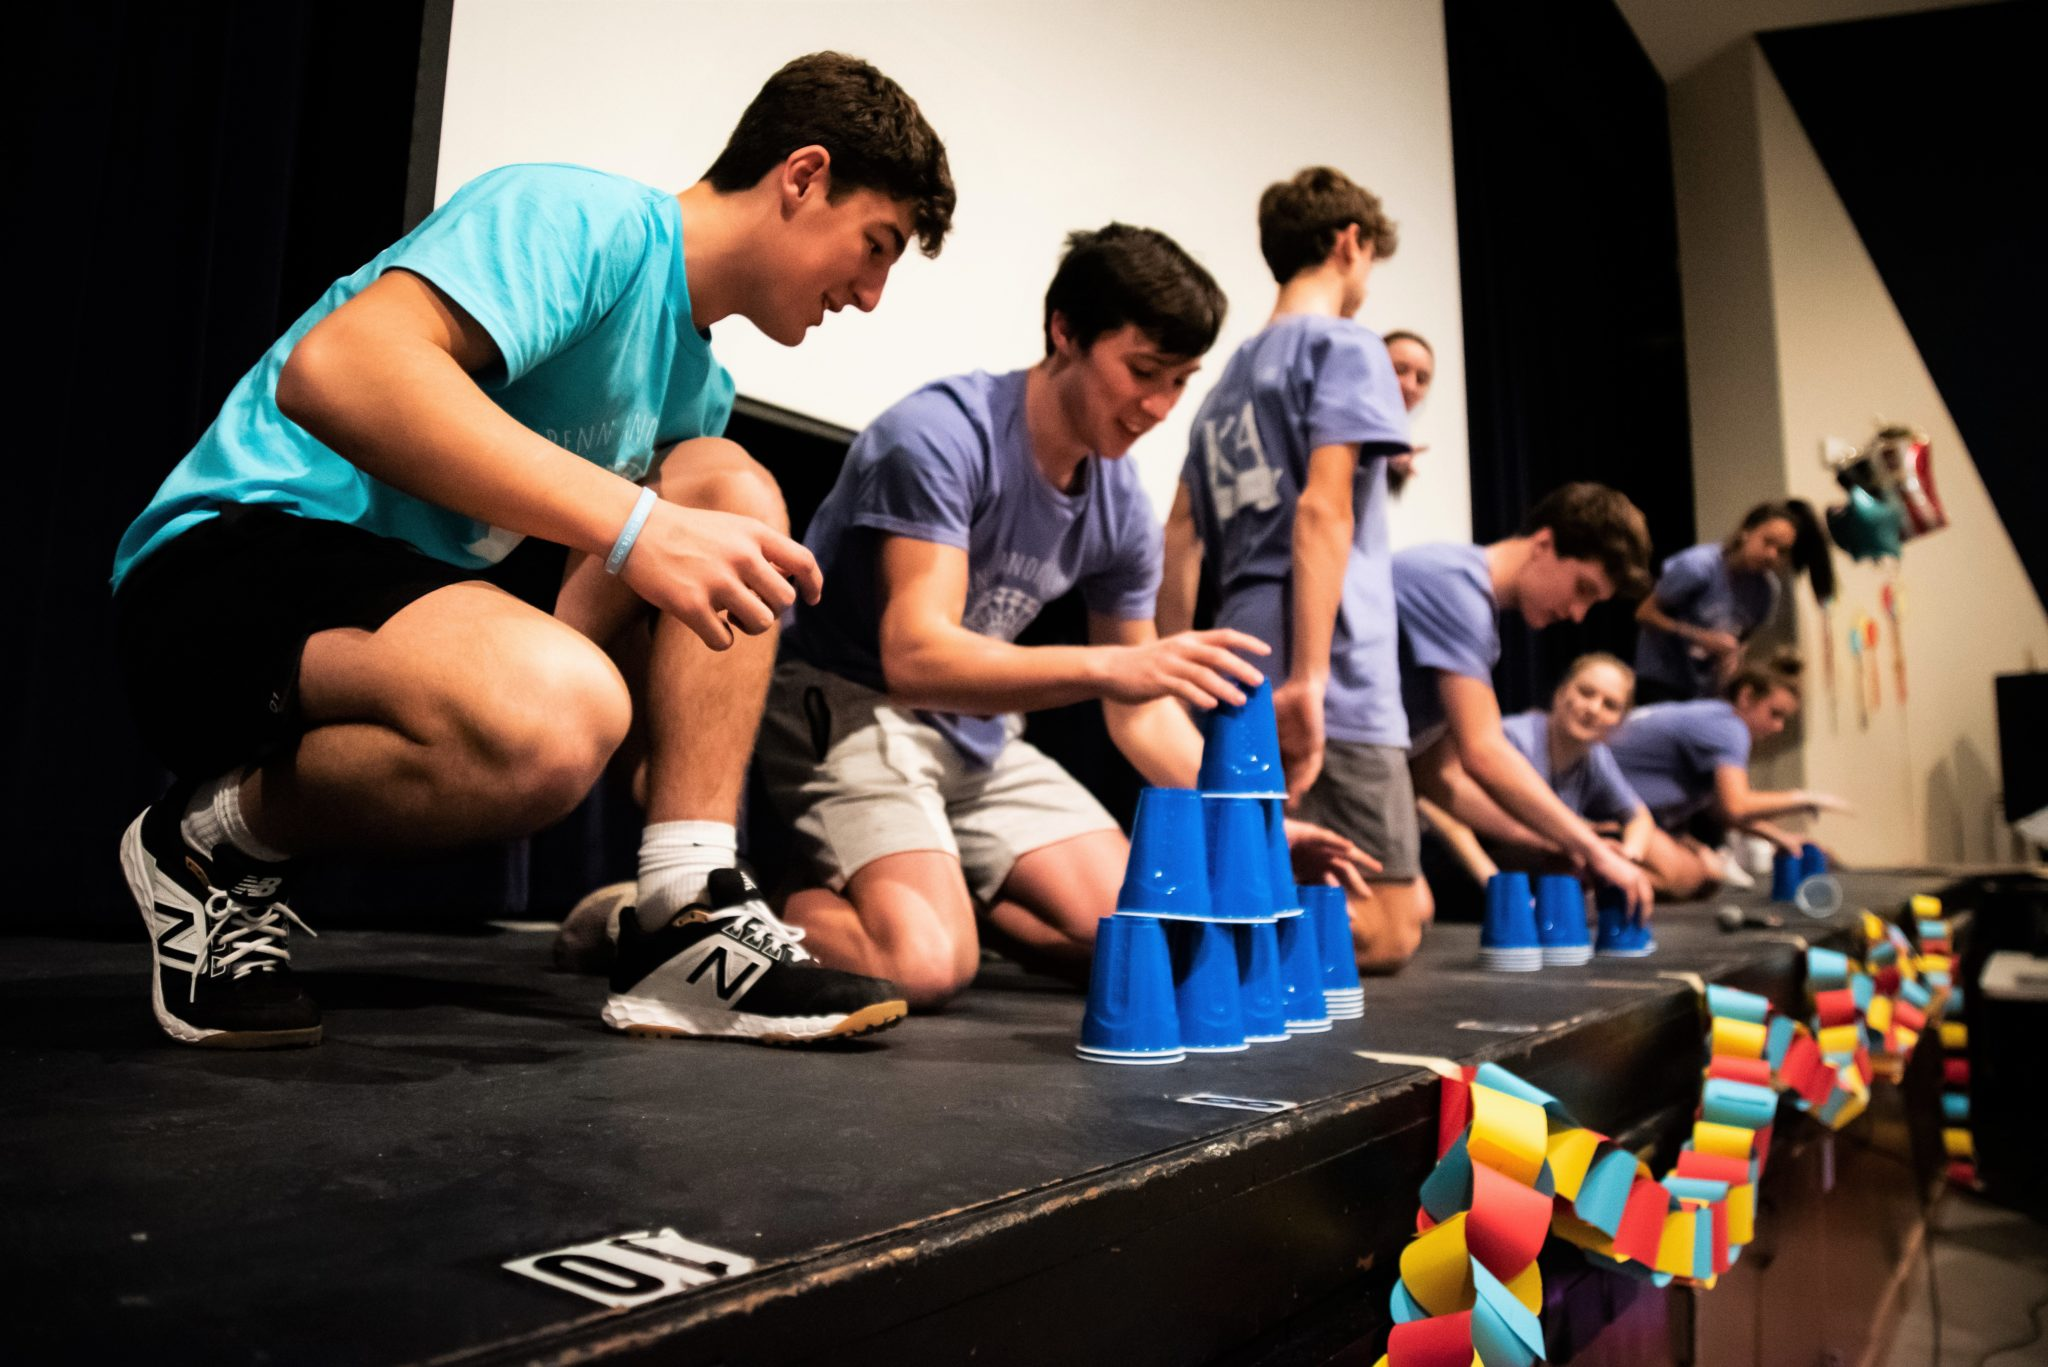 MiniTHON cup-stacking competition